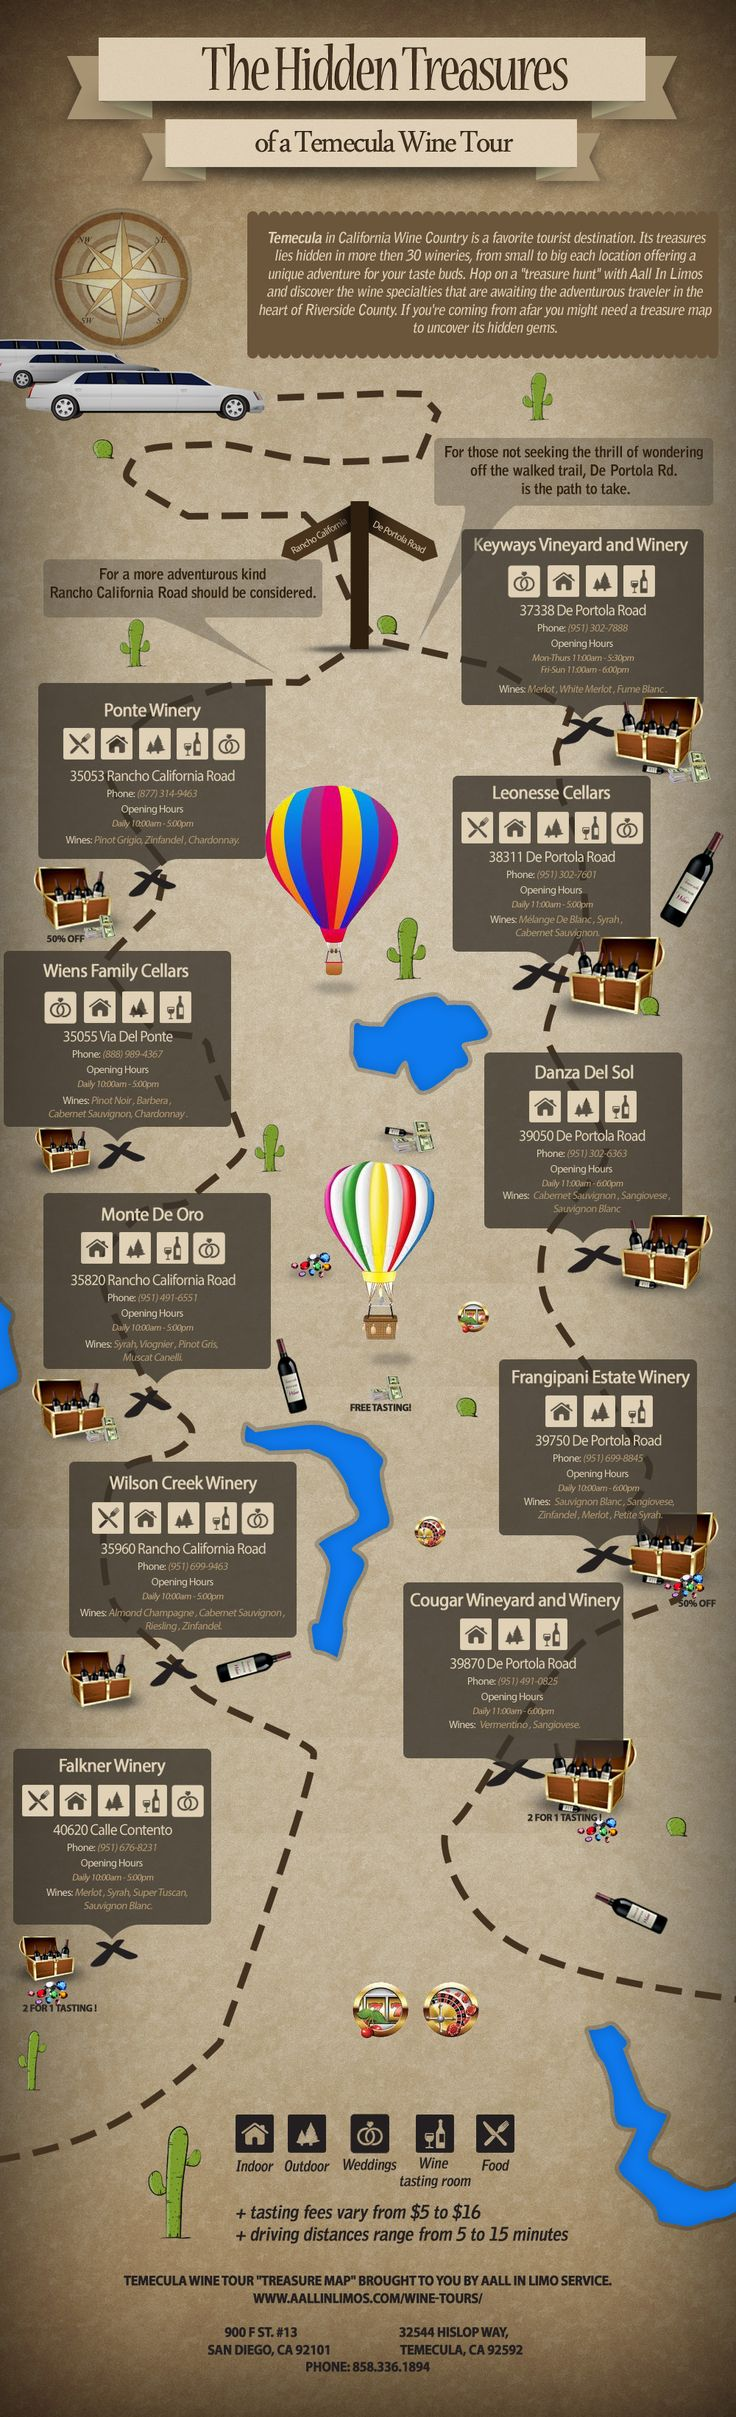 tour-map-of-temecula-valley-wineries_507eea77f2bc4